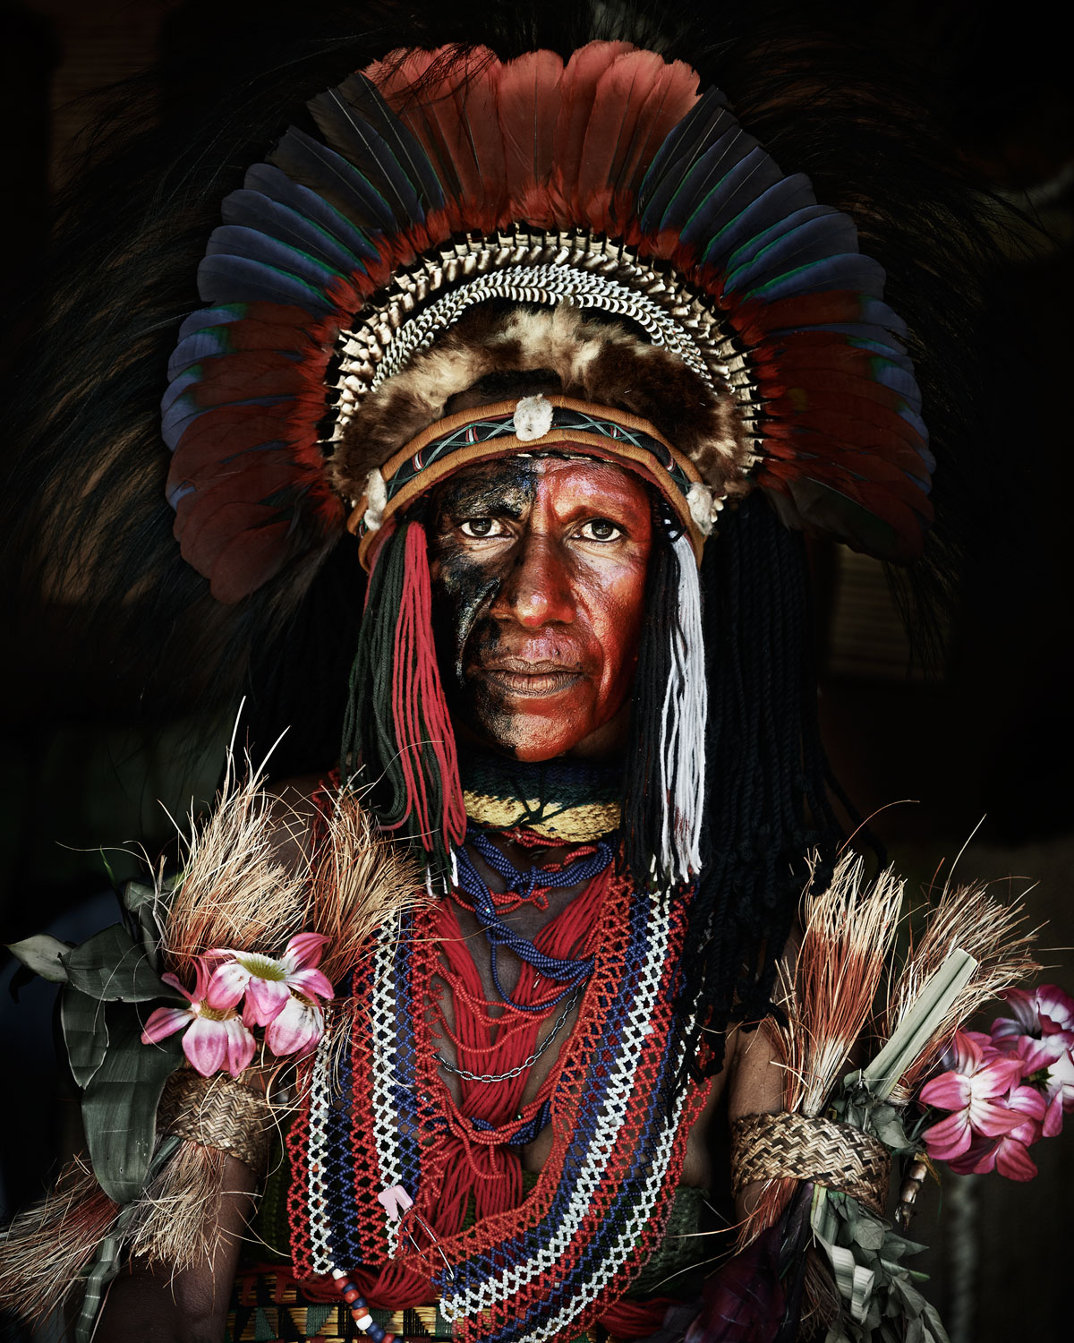 tribu-indigeni-mondo-fotografia-before-they-pass-away-jimmy-nelson-08